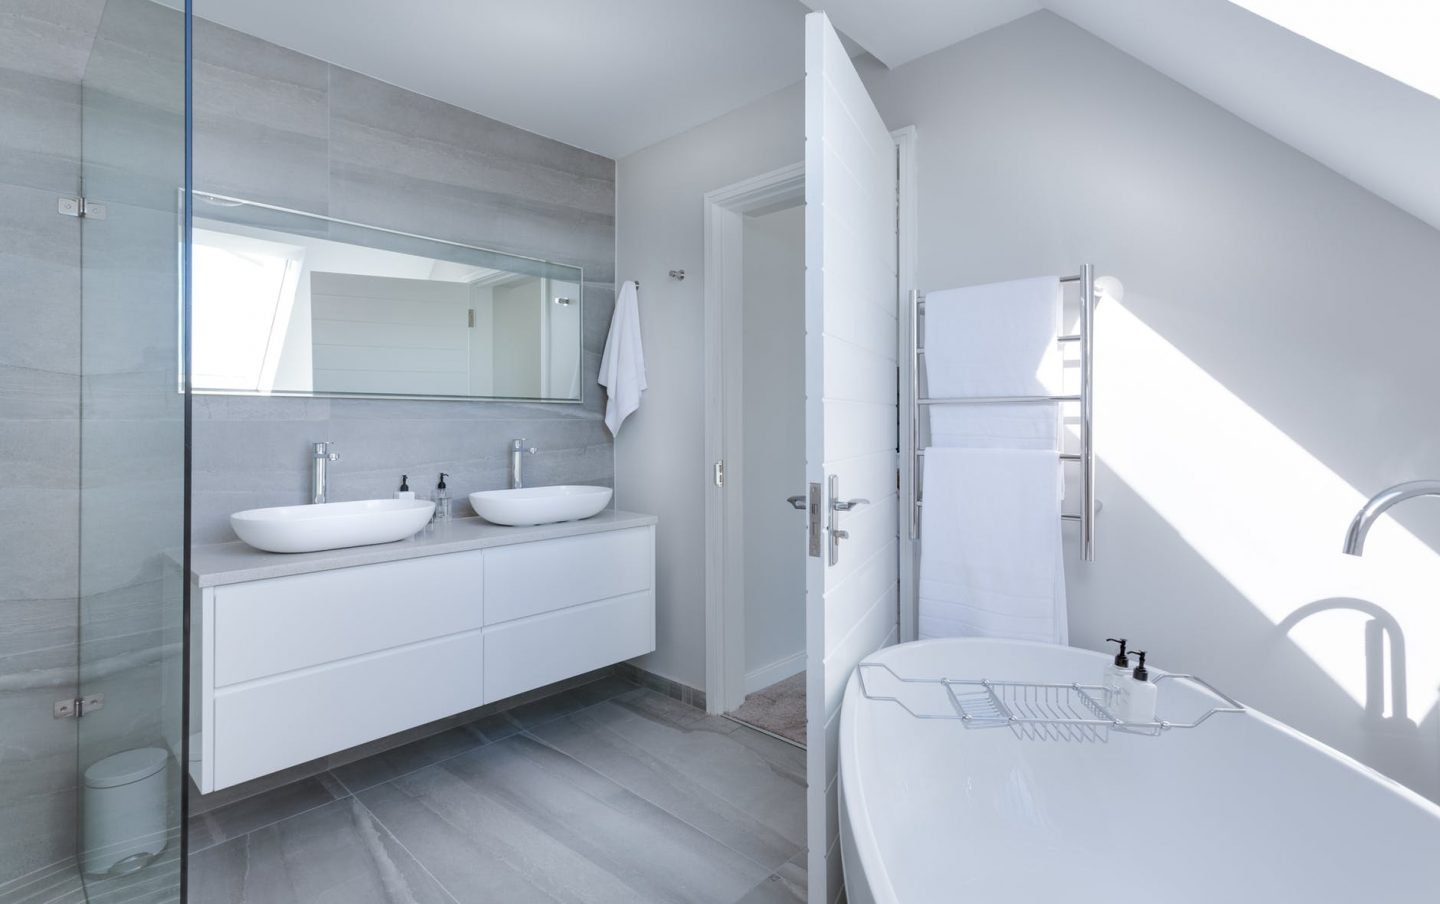 White colour themed bathroom with large sink and mirror and bathtub.